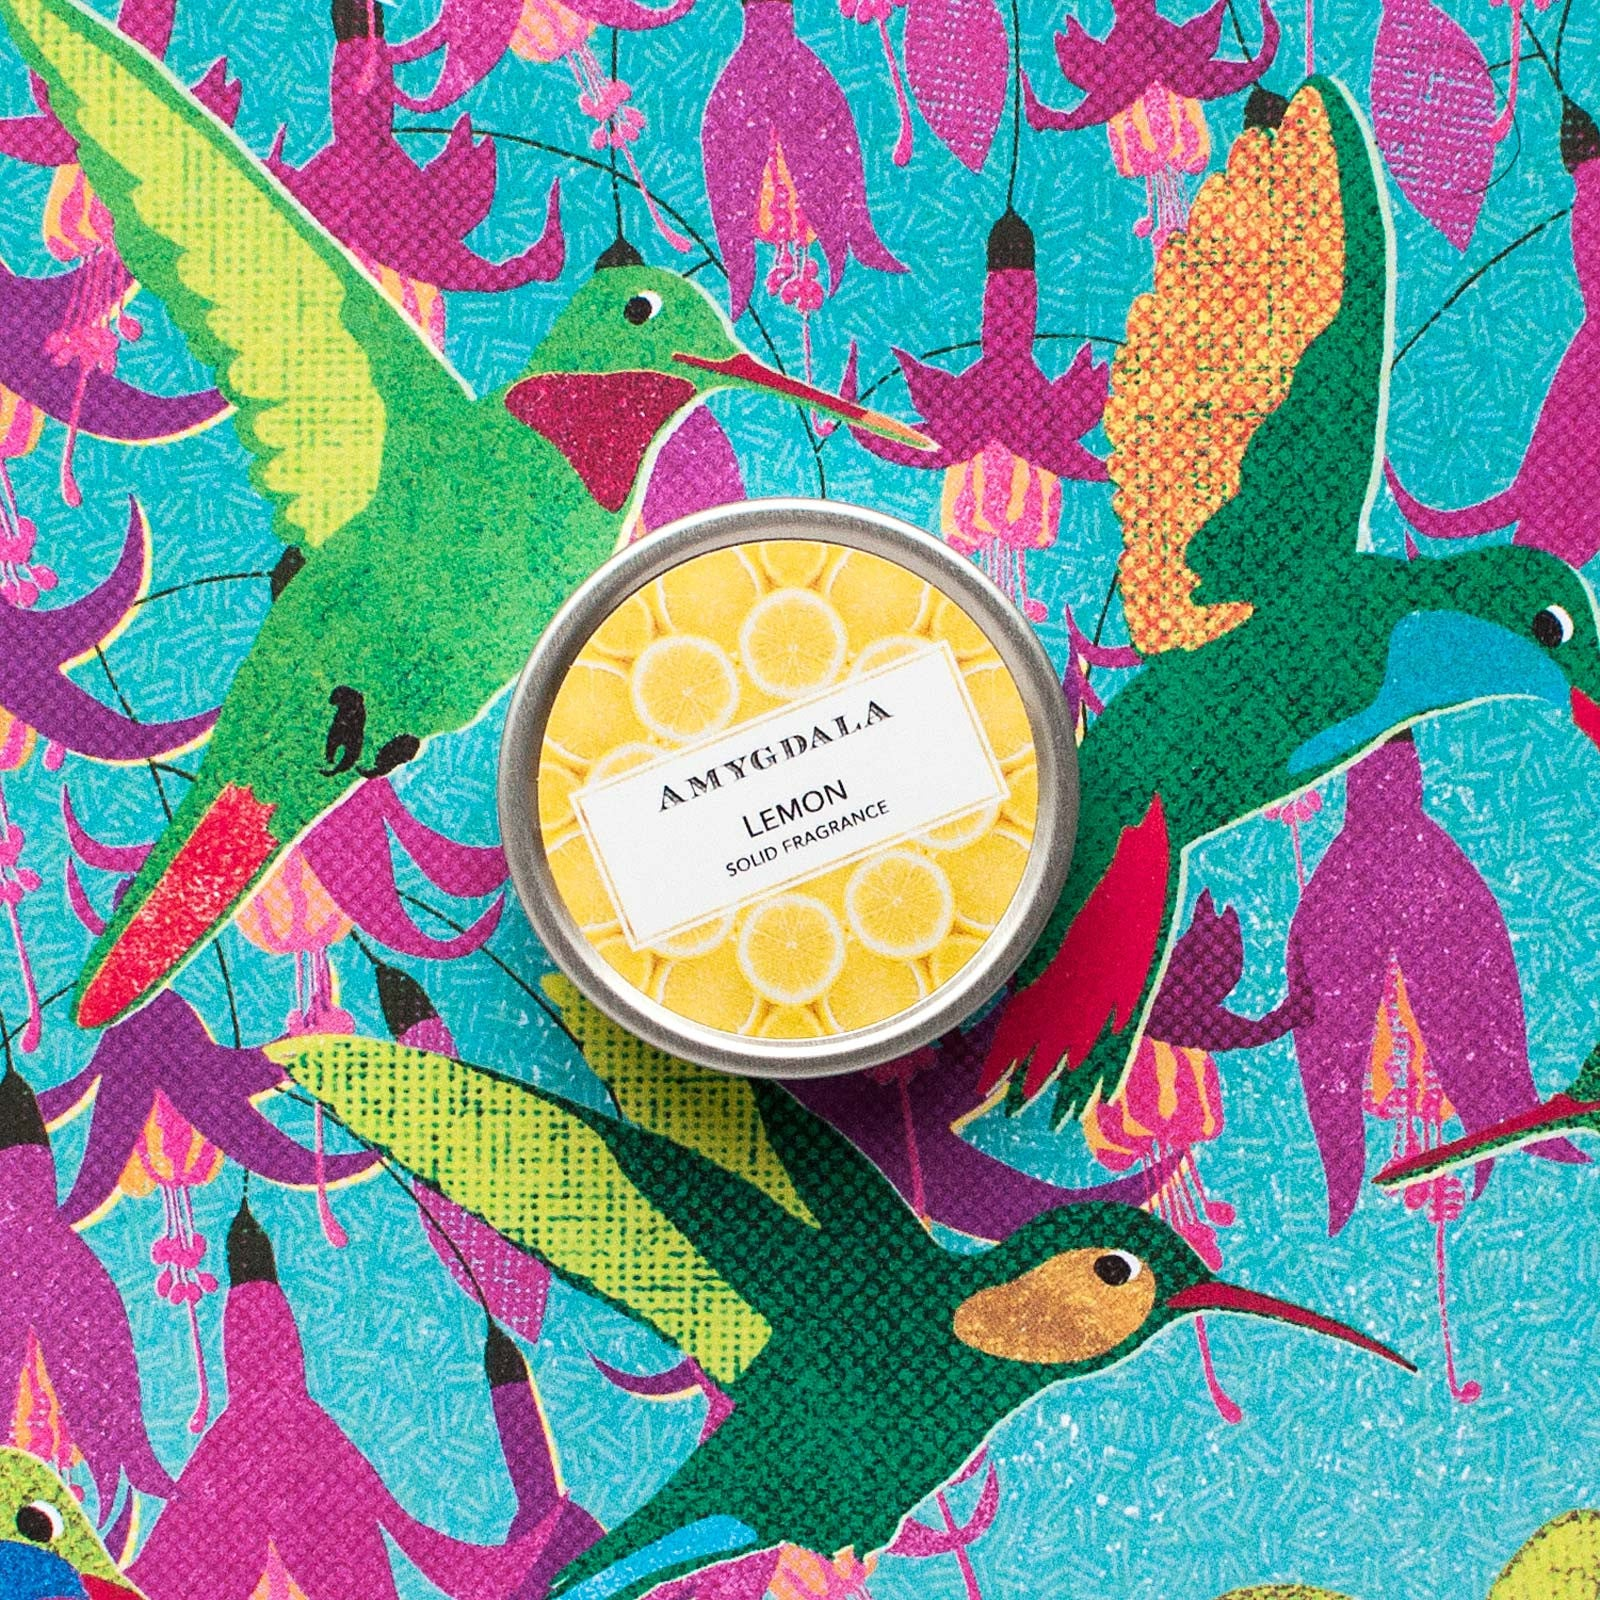 Lemon solid perfume